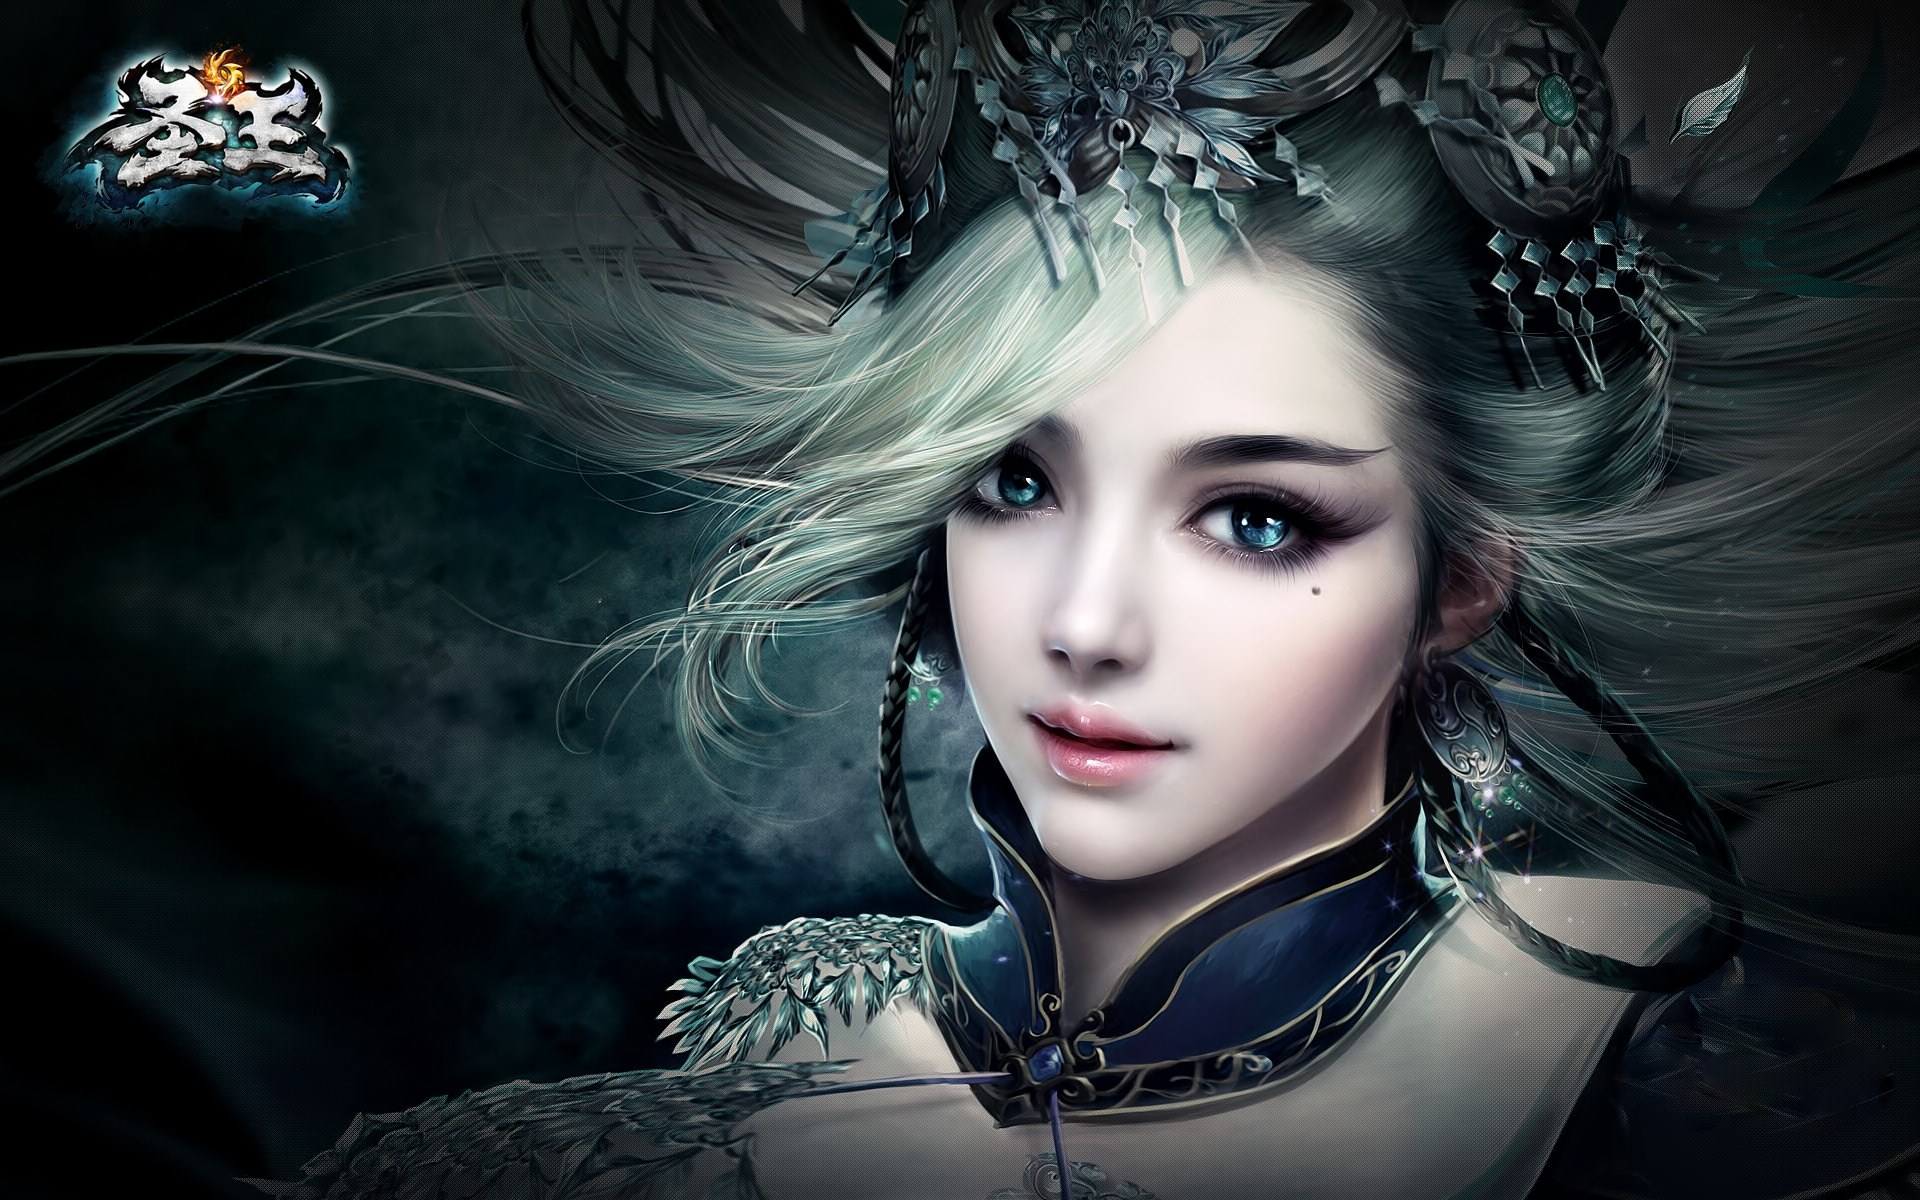 Fantasy Images Women Wallpaper Hd 3 Thumb